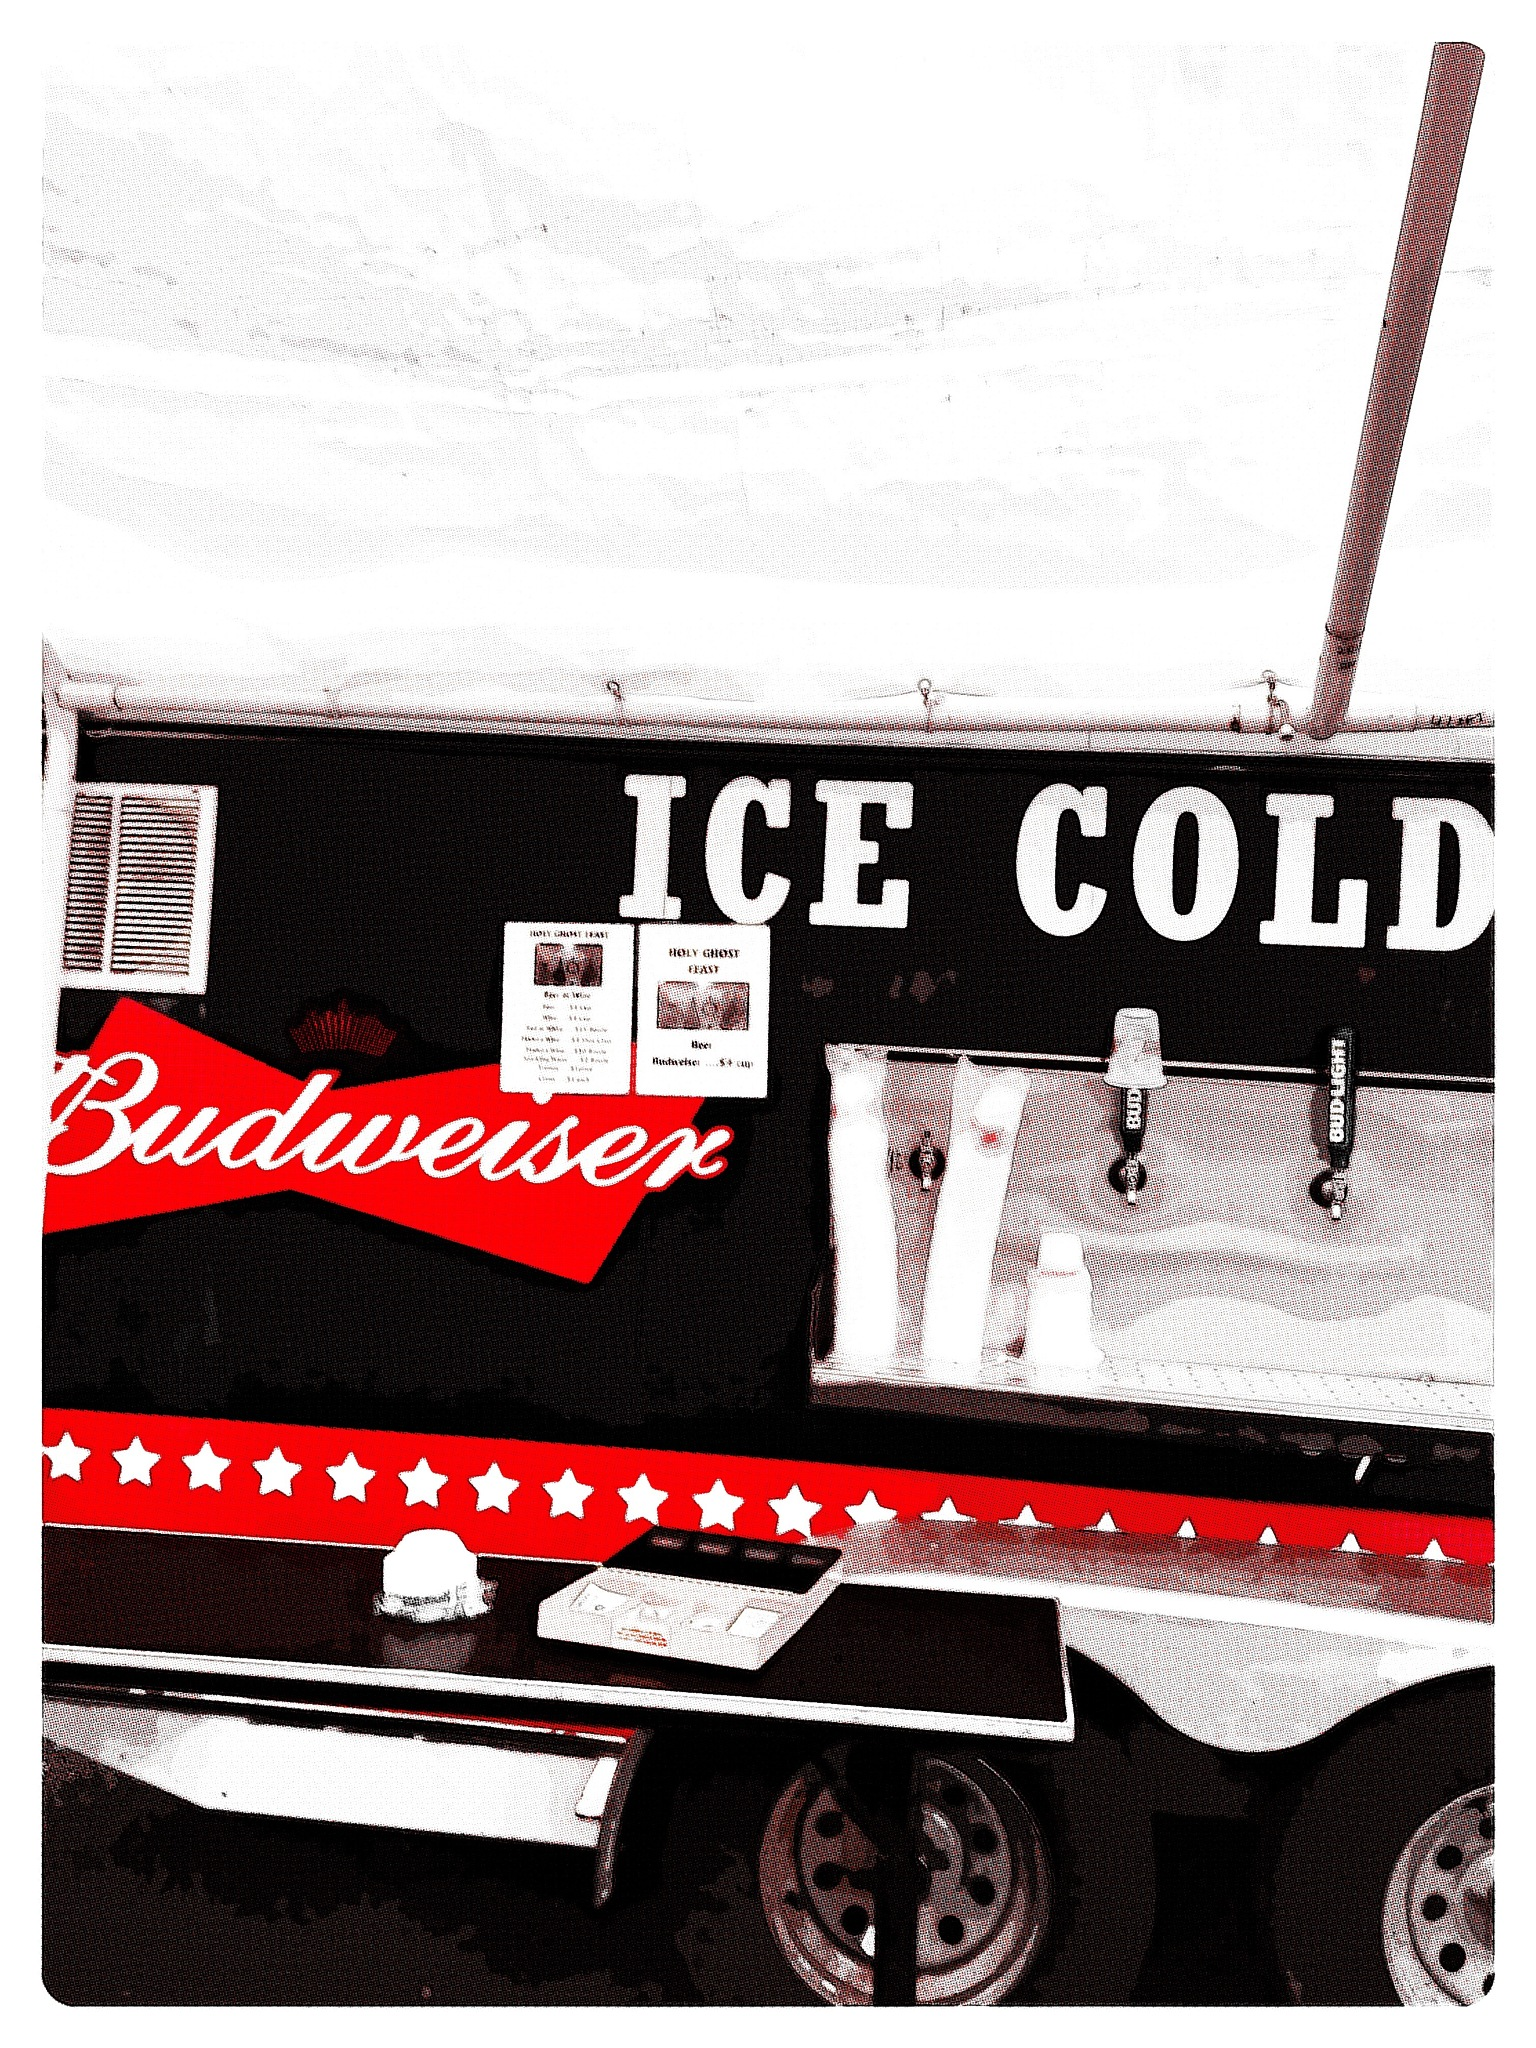 ICE COLD BUDWEISER by cathy.pepe.9